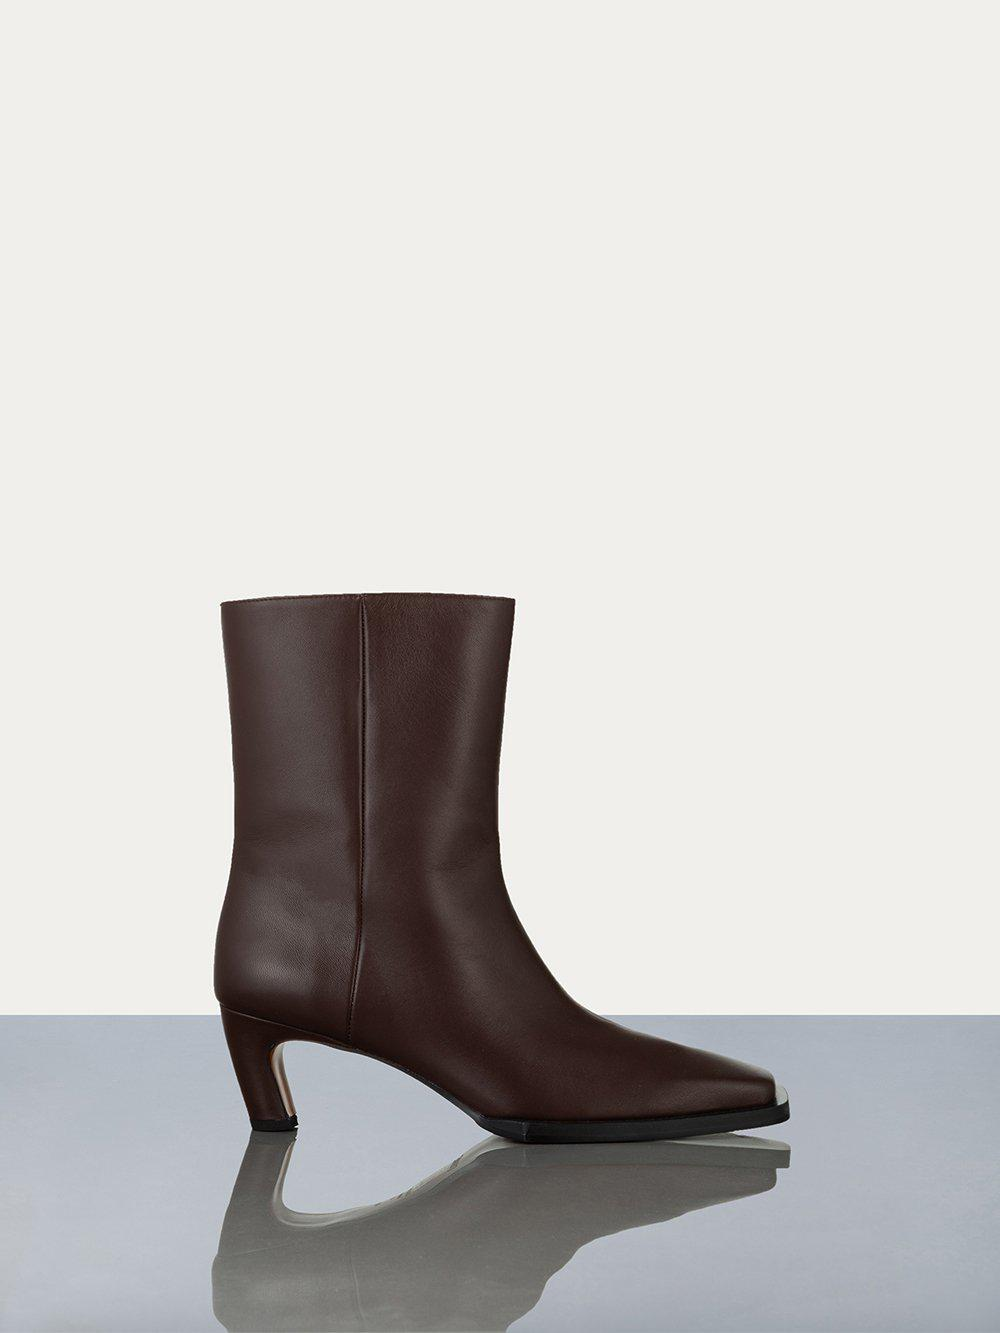 Le Brooklyn Bootie -- Canyon